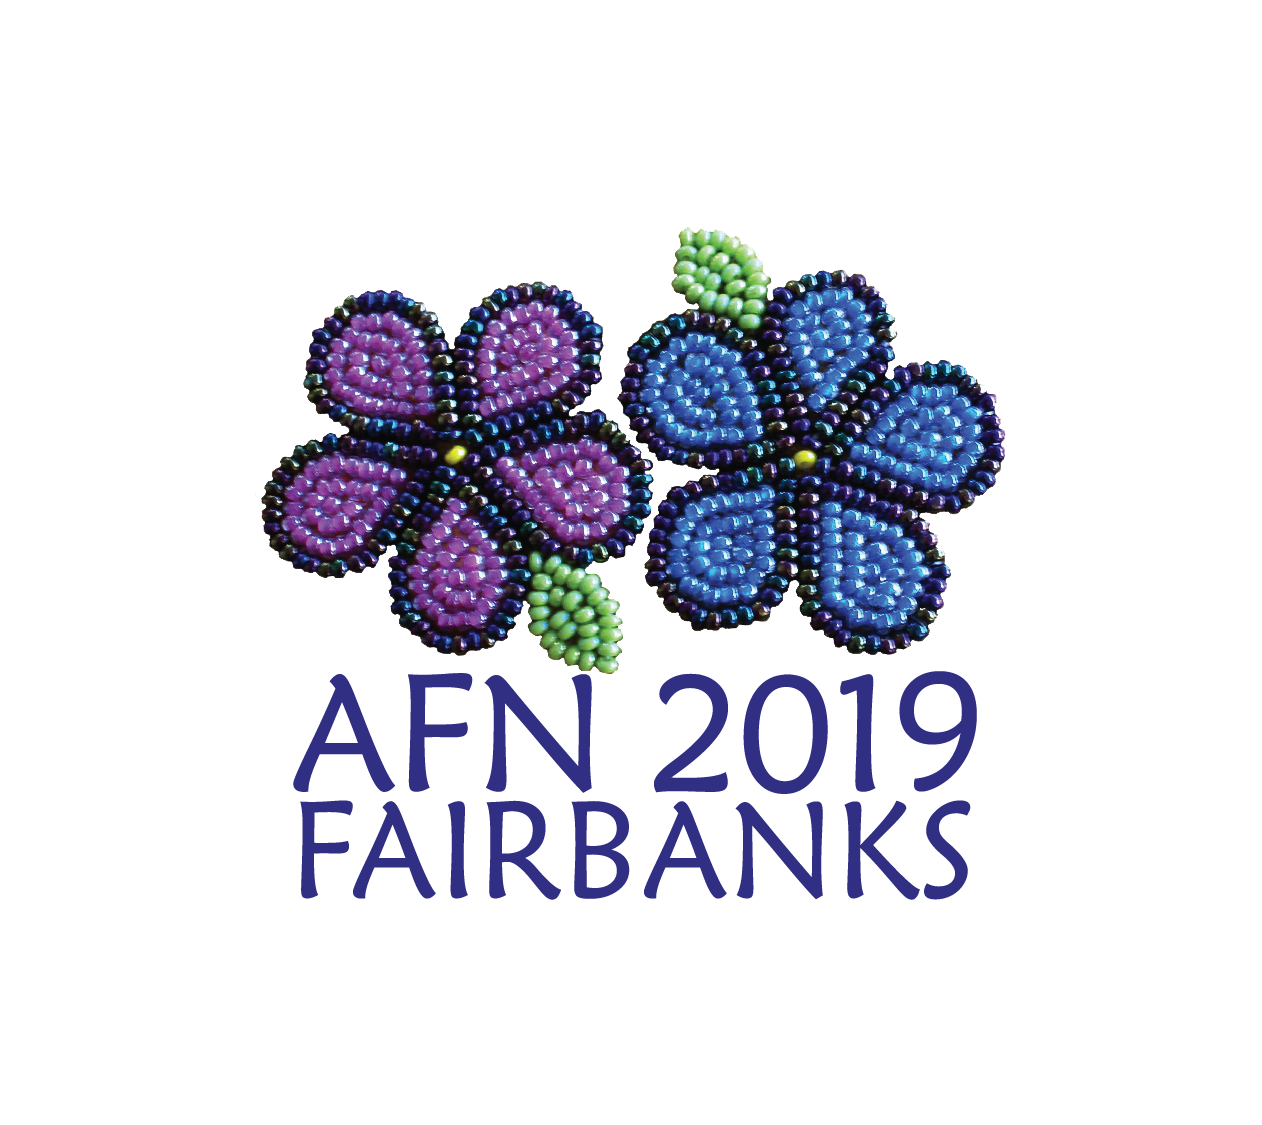 Fairbanks Welcomes AFN